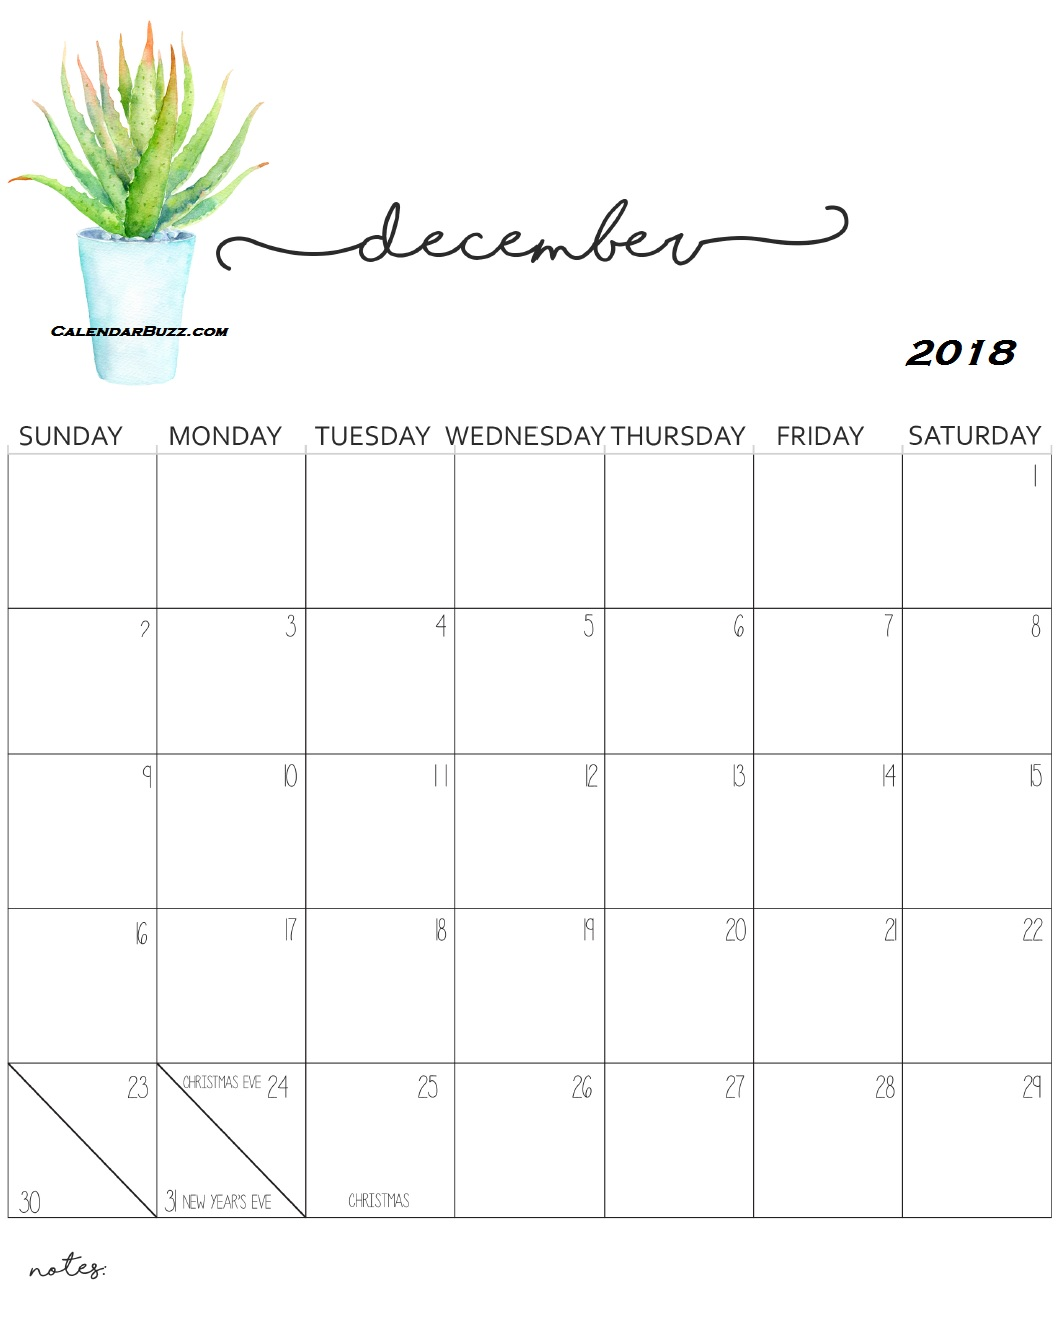 Monthly Wall Calendar 2018 December